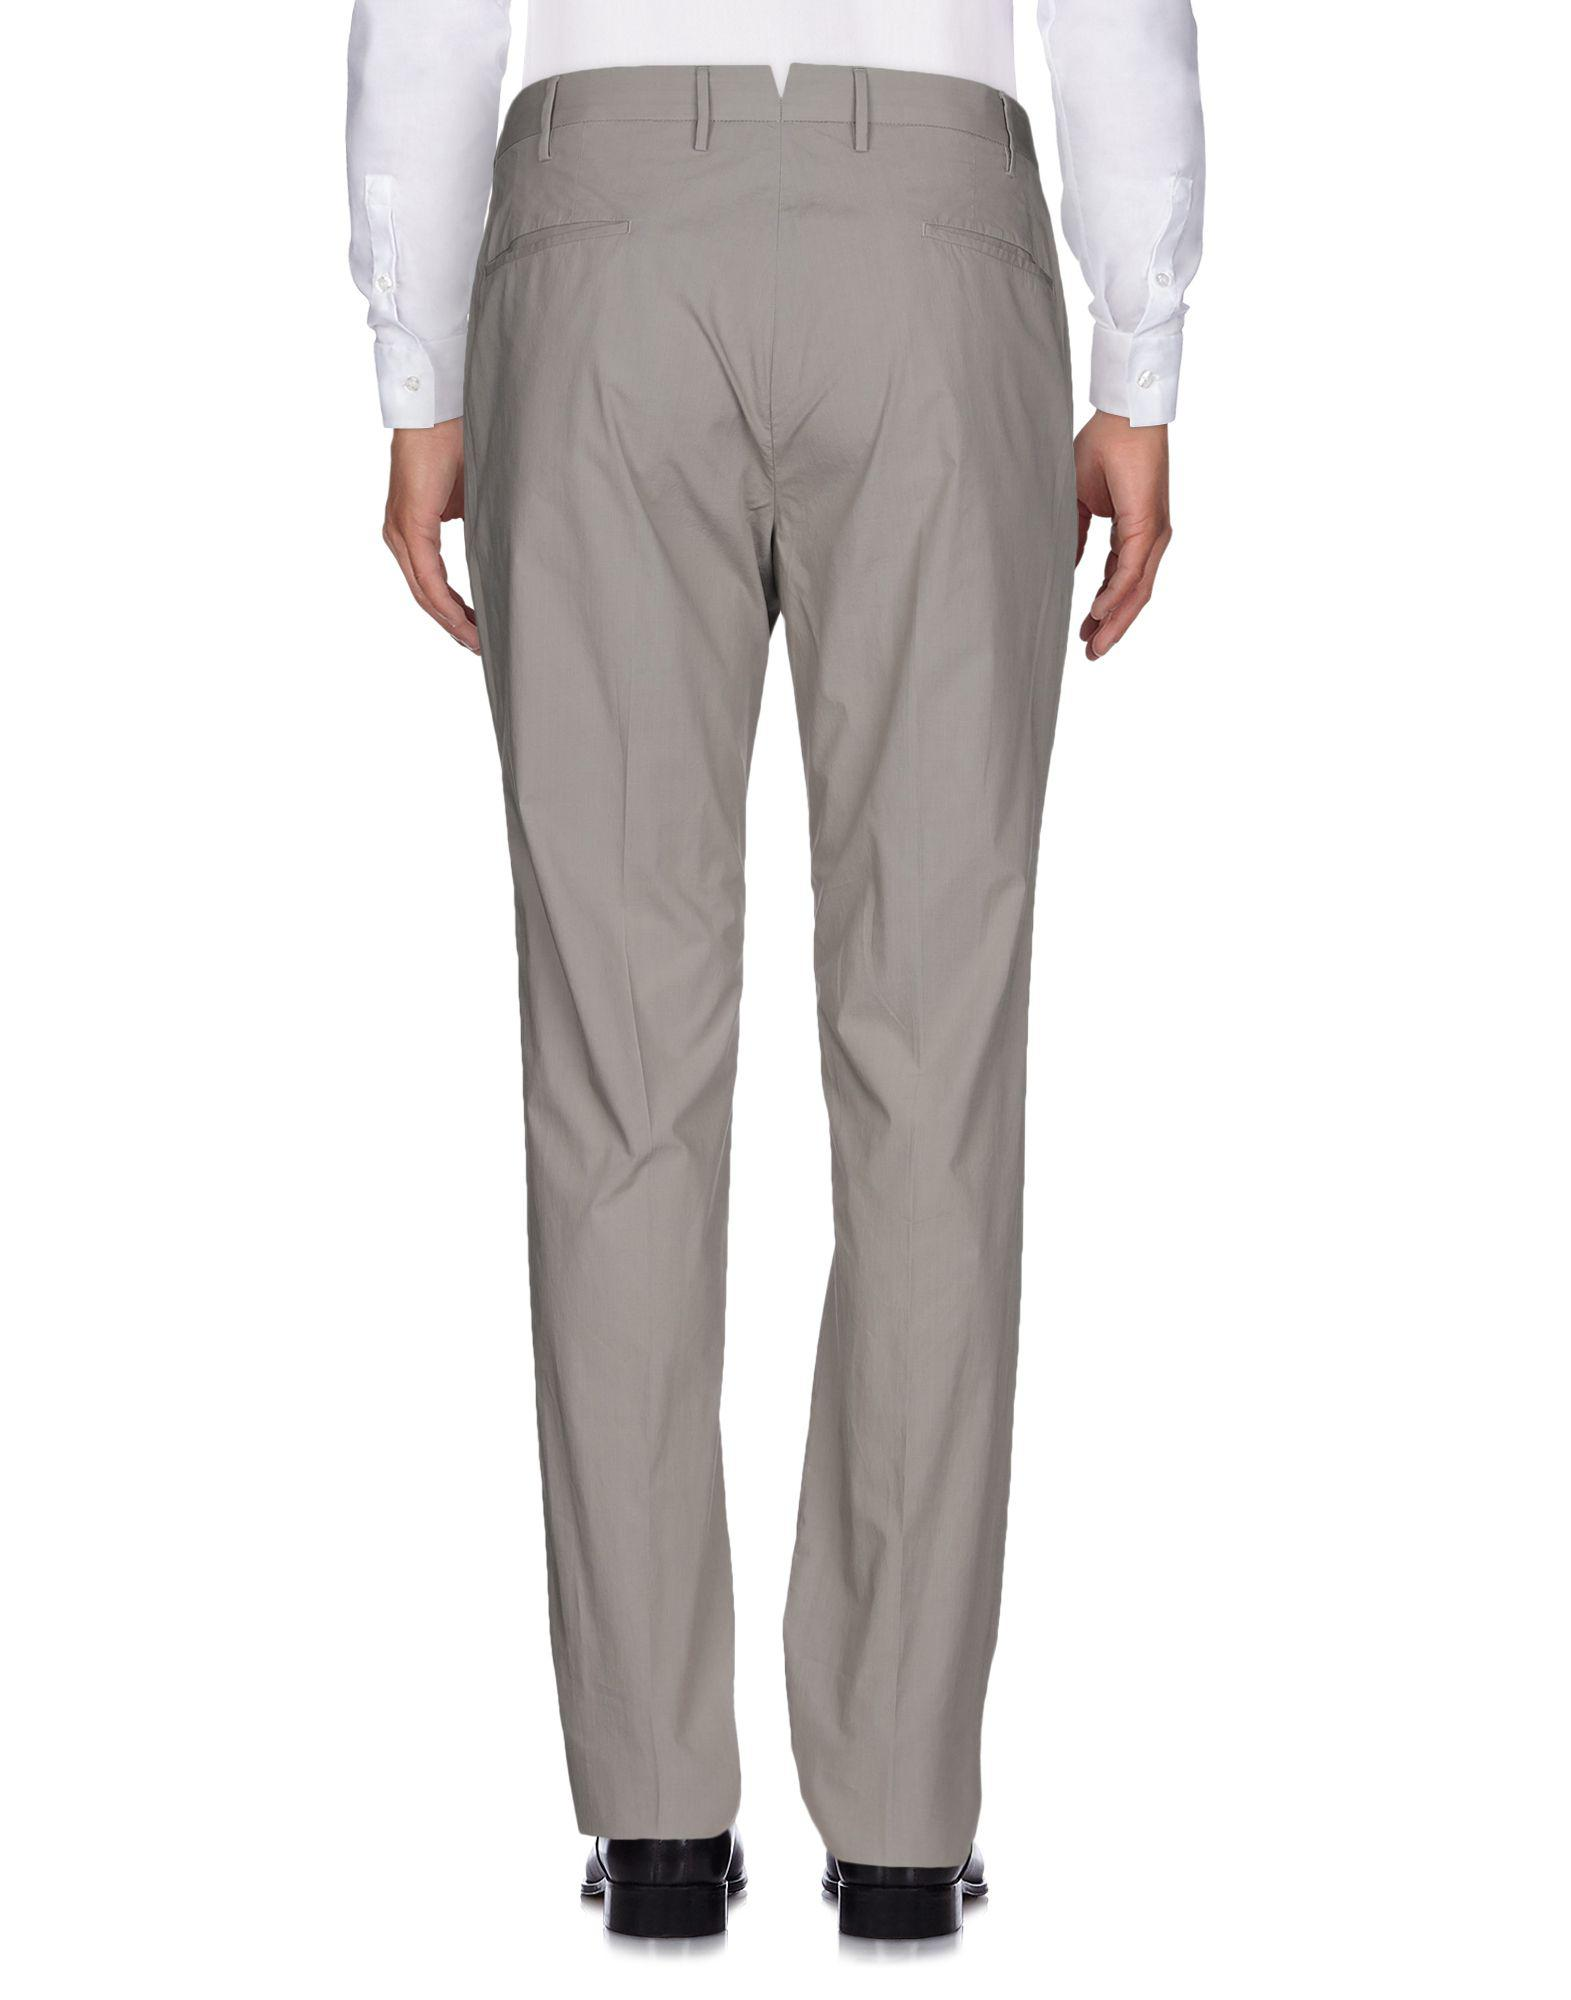 Incotex Cotton Casual Pants in Light Grey (Grey) for Men